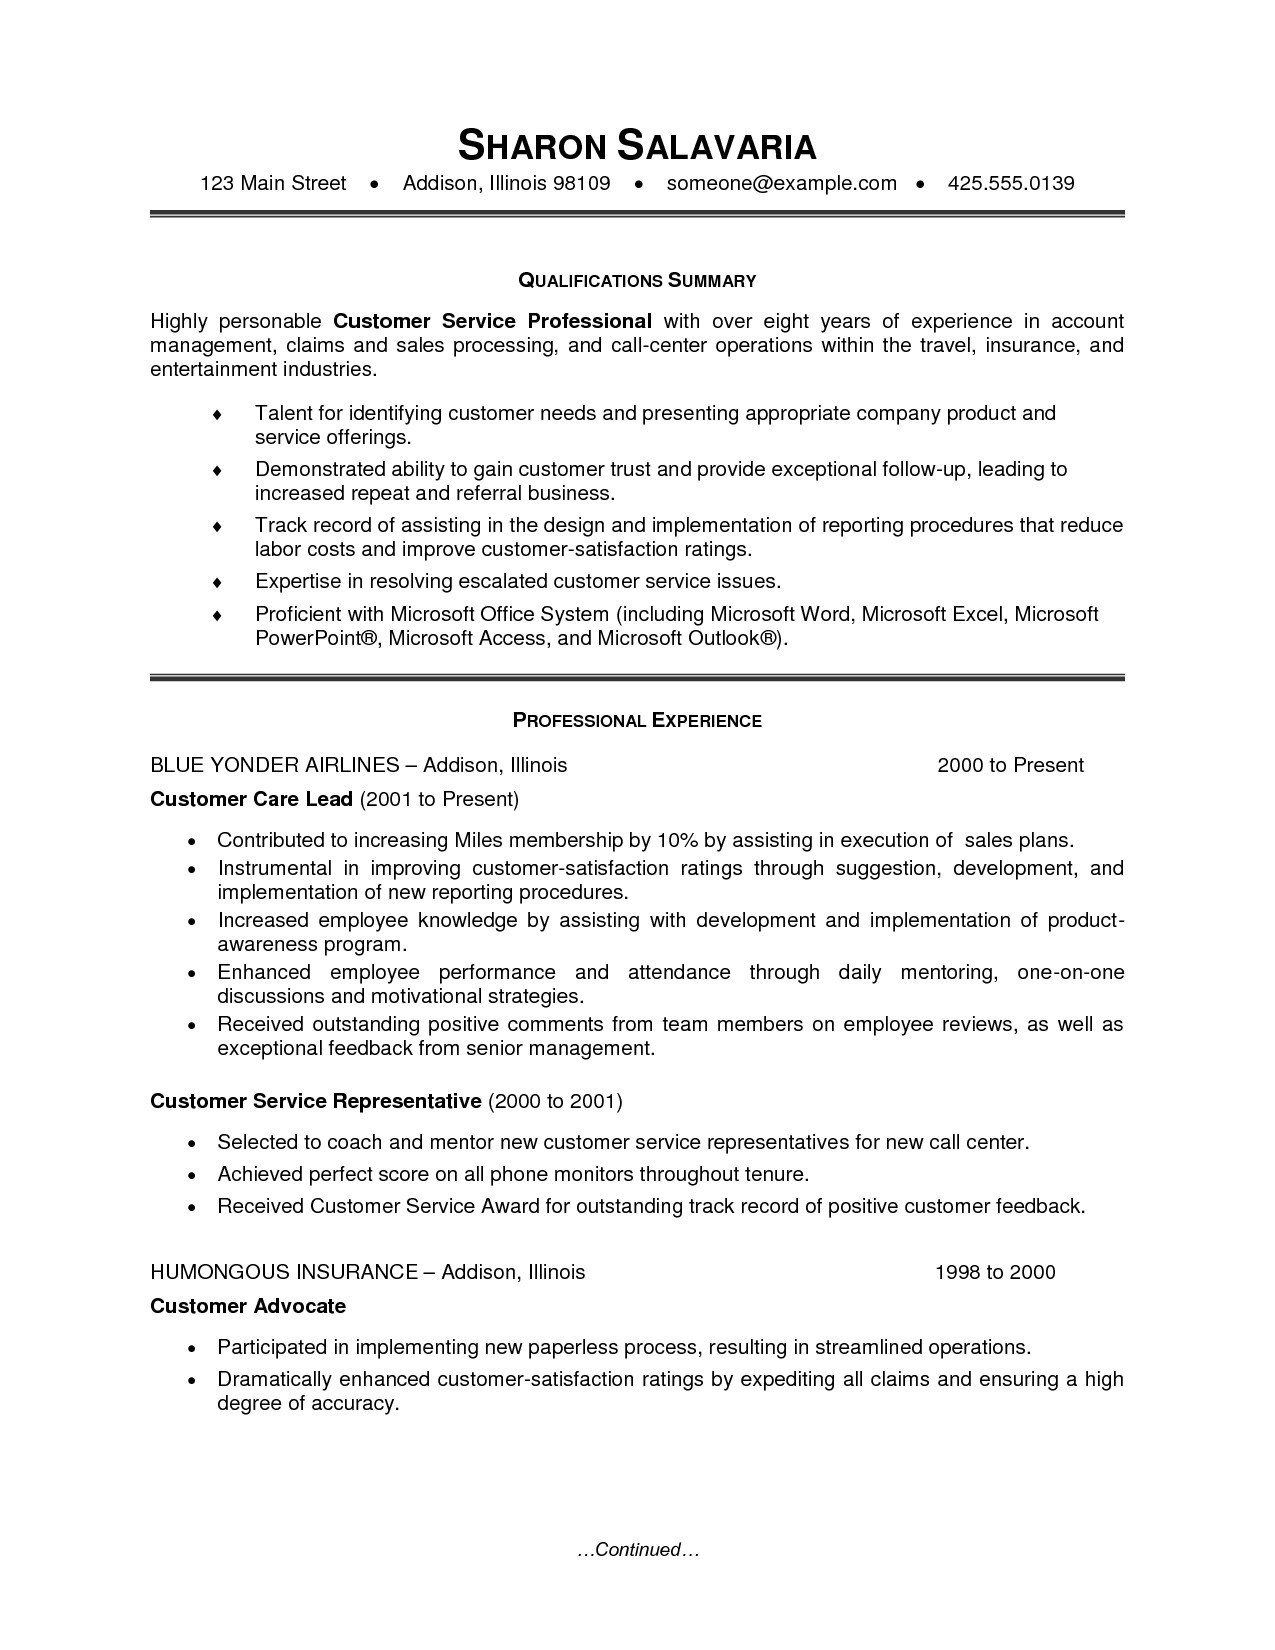 Resume Summary Ideas - Professional Summary Resume Lovely Resume Summary Examples for It